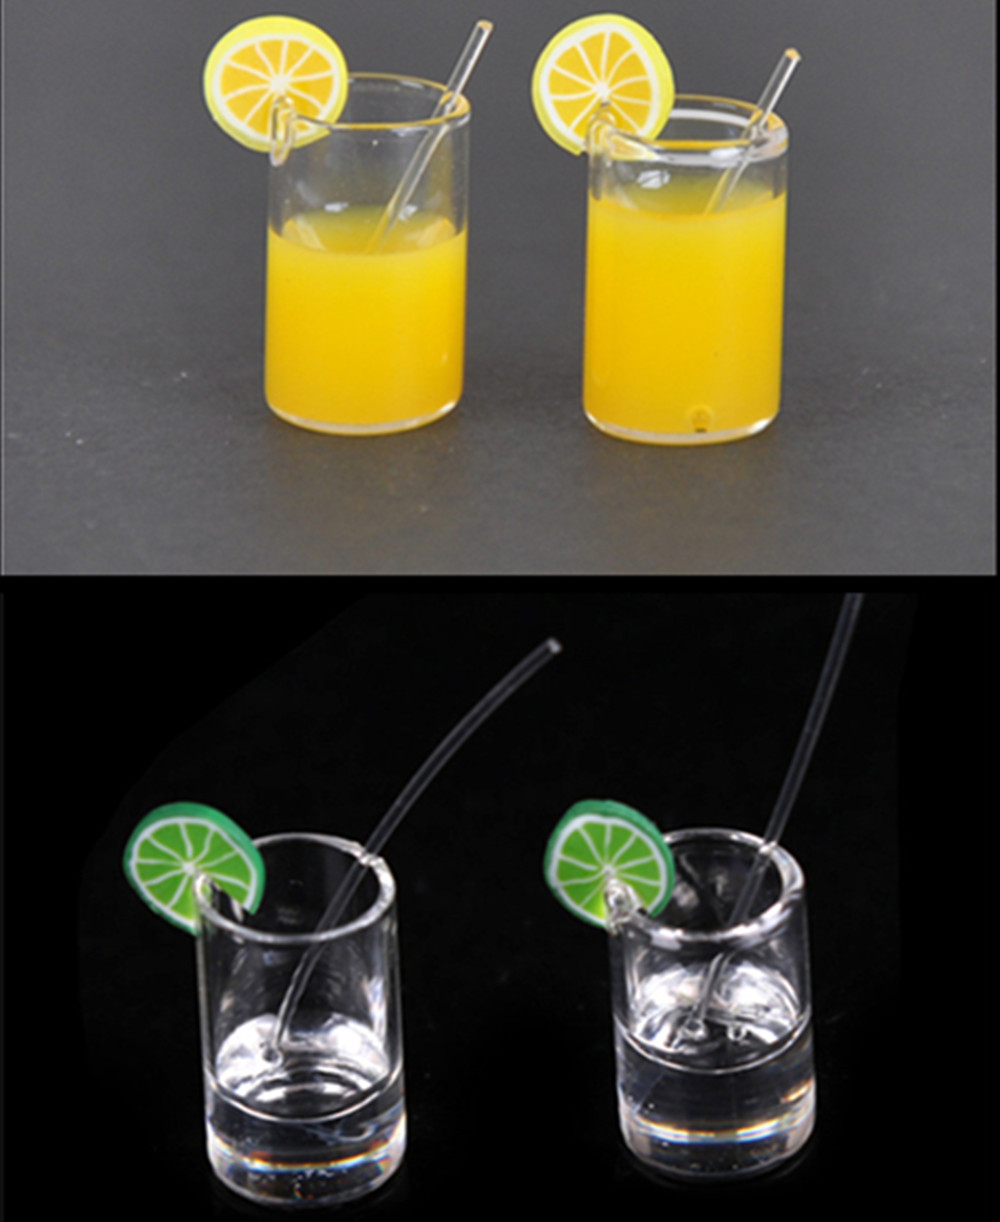 2pcs 1:12 Mini Lemon Water Cup Dollhouse Miniature Milk Cup Drinking Water Cups Dollhouse Kitchen Accessories